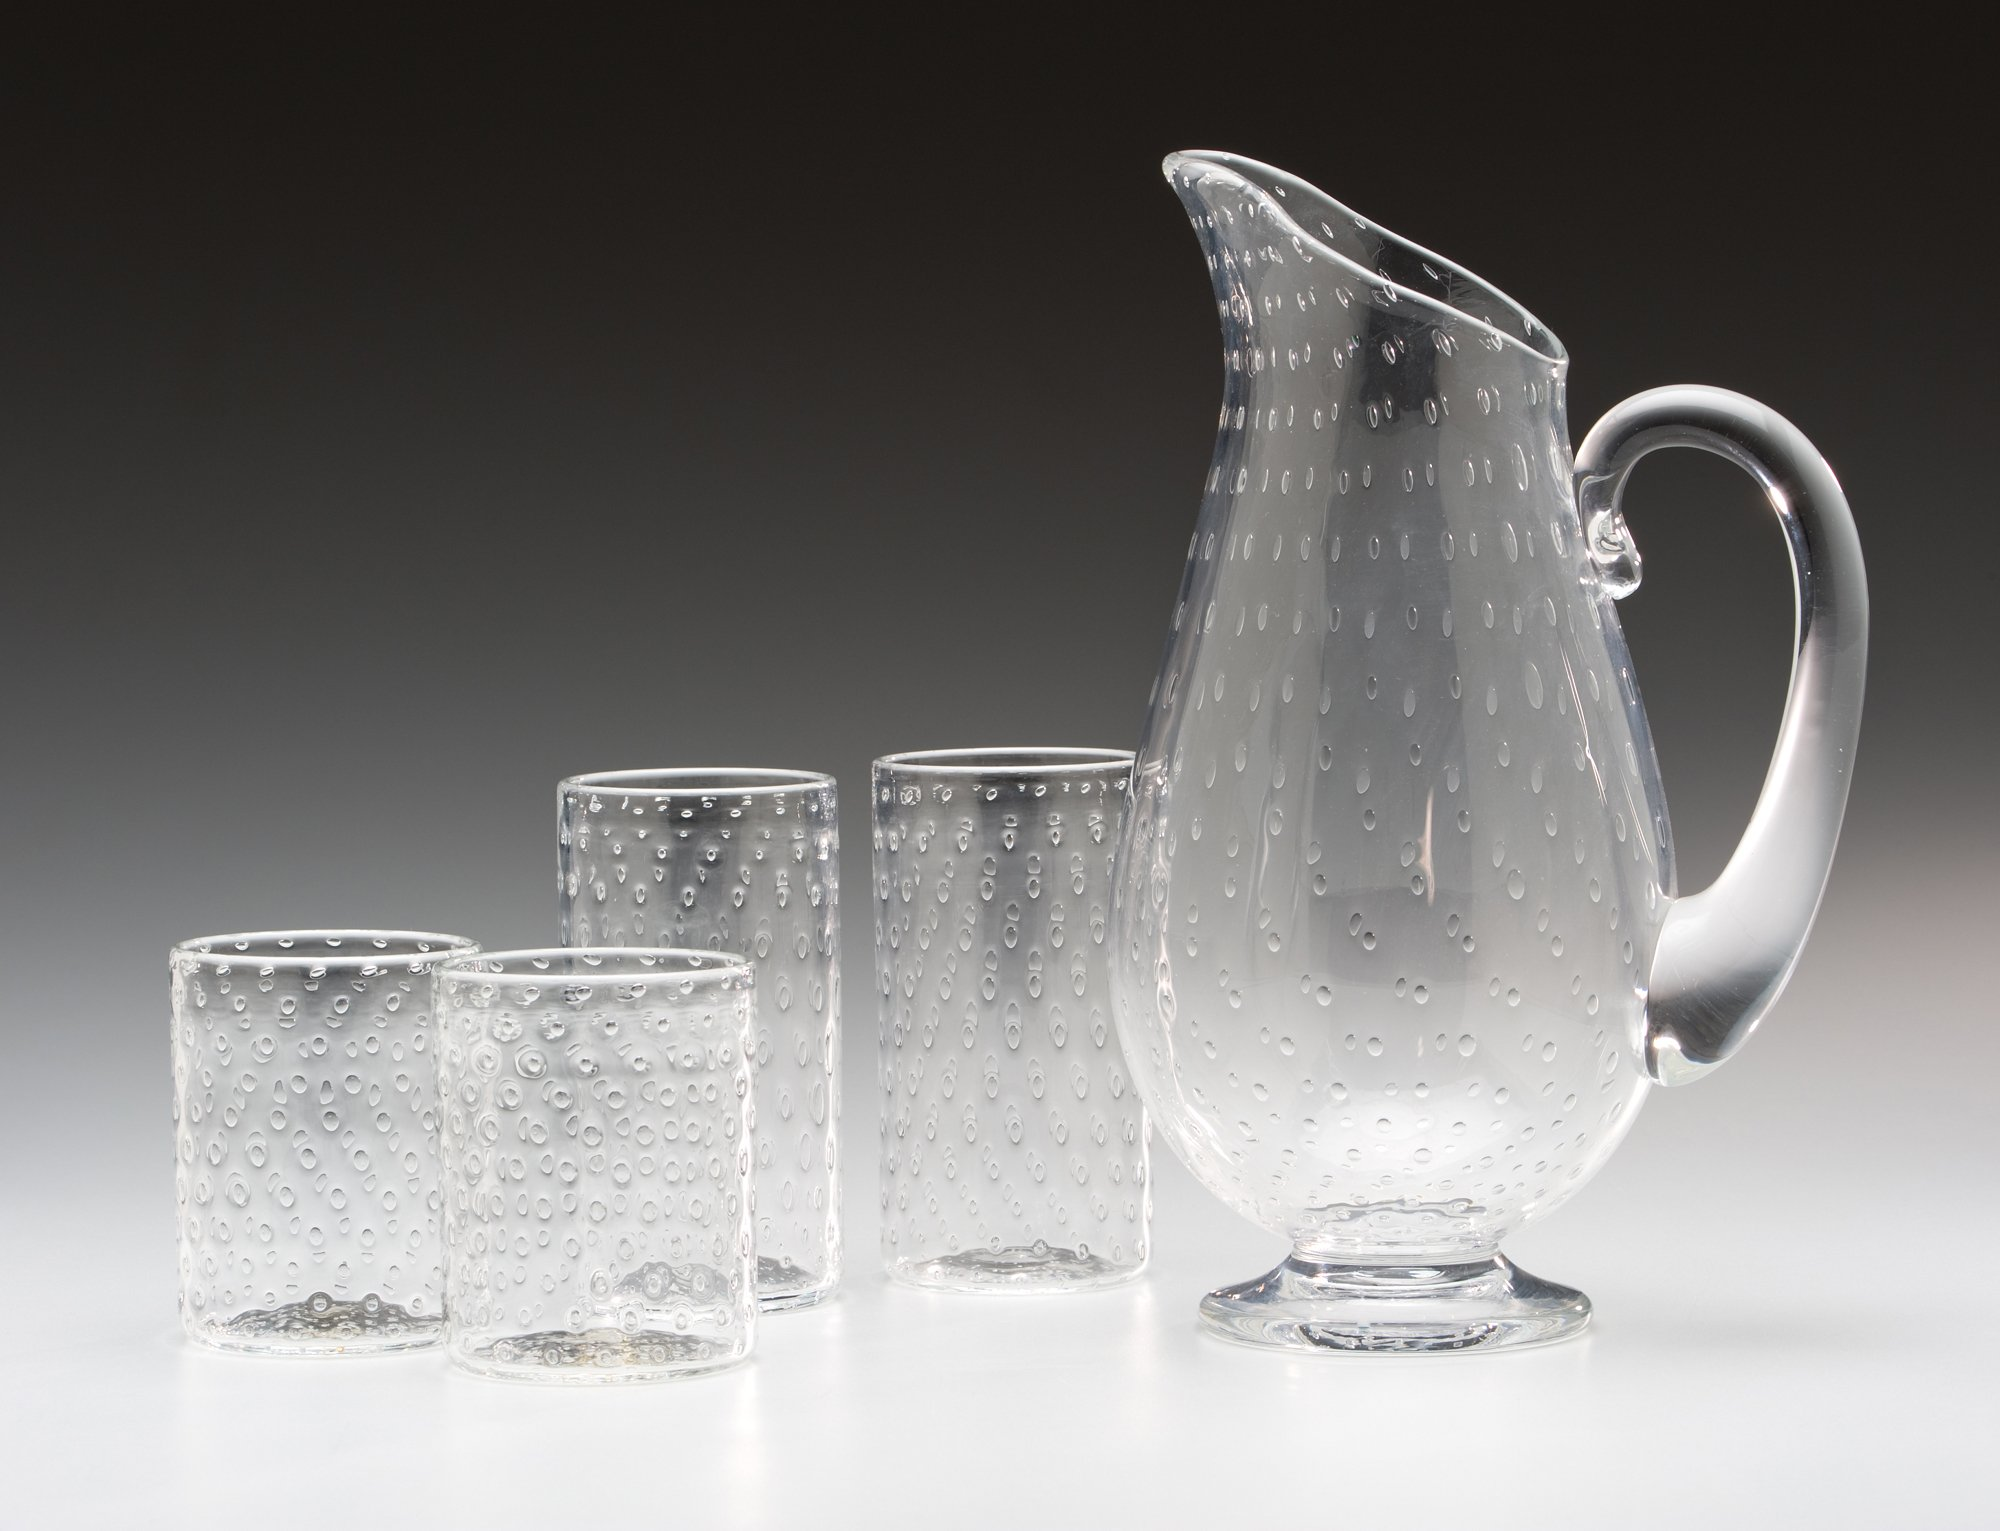 Bubble Pitcher And Glasses By Kenny Pieper Art Glassware